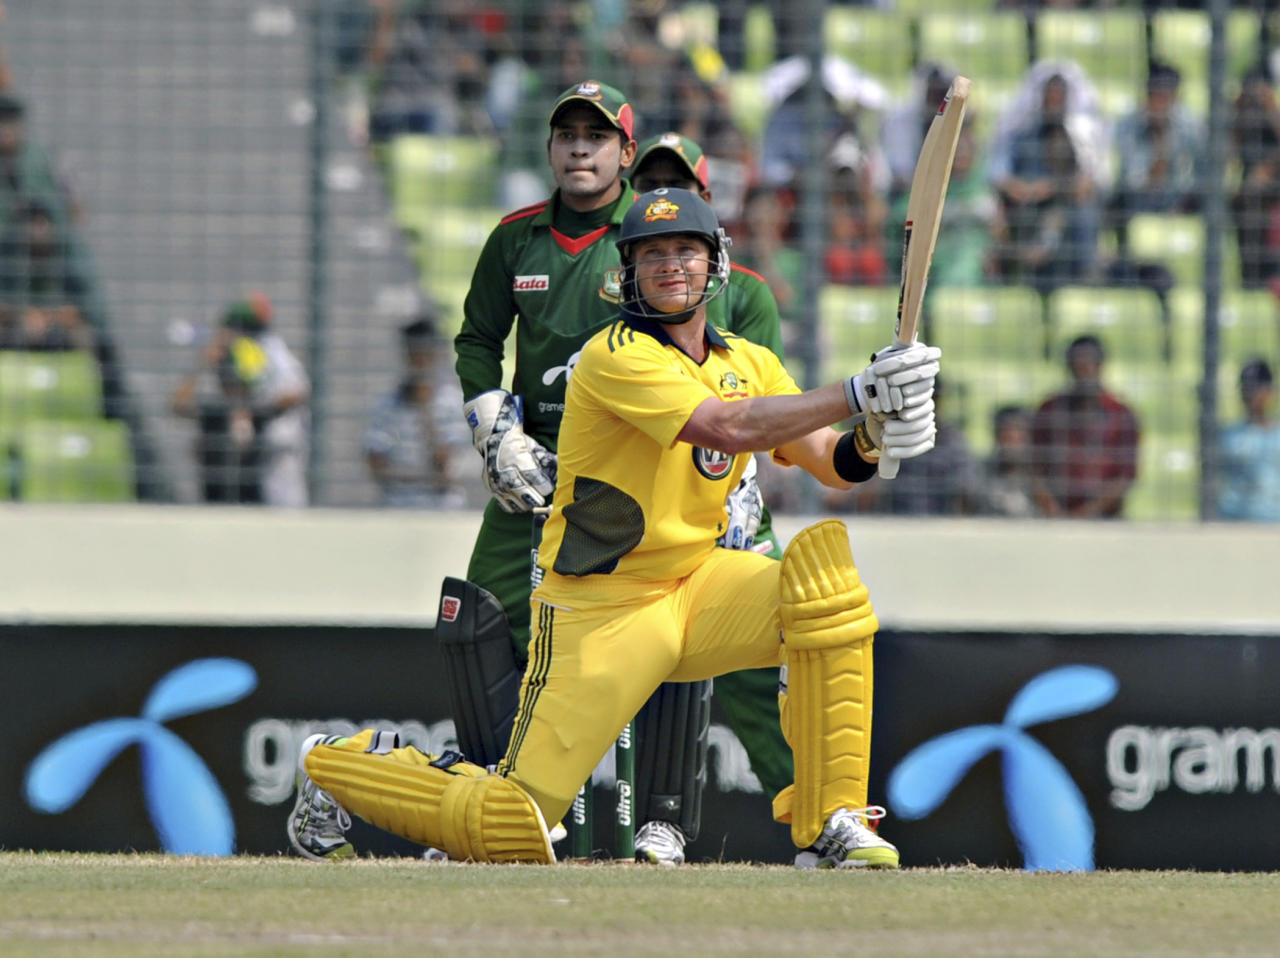 Australia's Shane Watson plays a shot during their second one-day international cricket match against Bangladesh in Dhaka, Bangladesh, Monday, April 11, 2011. Australia won the first match of the three-game series on Saturday.